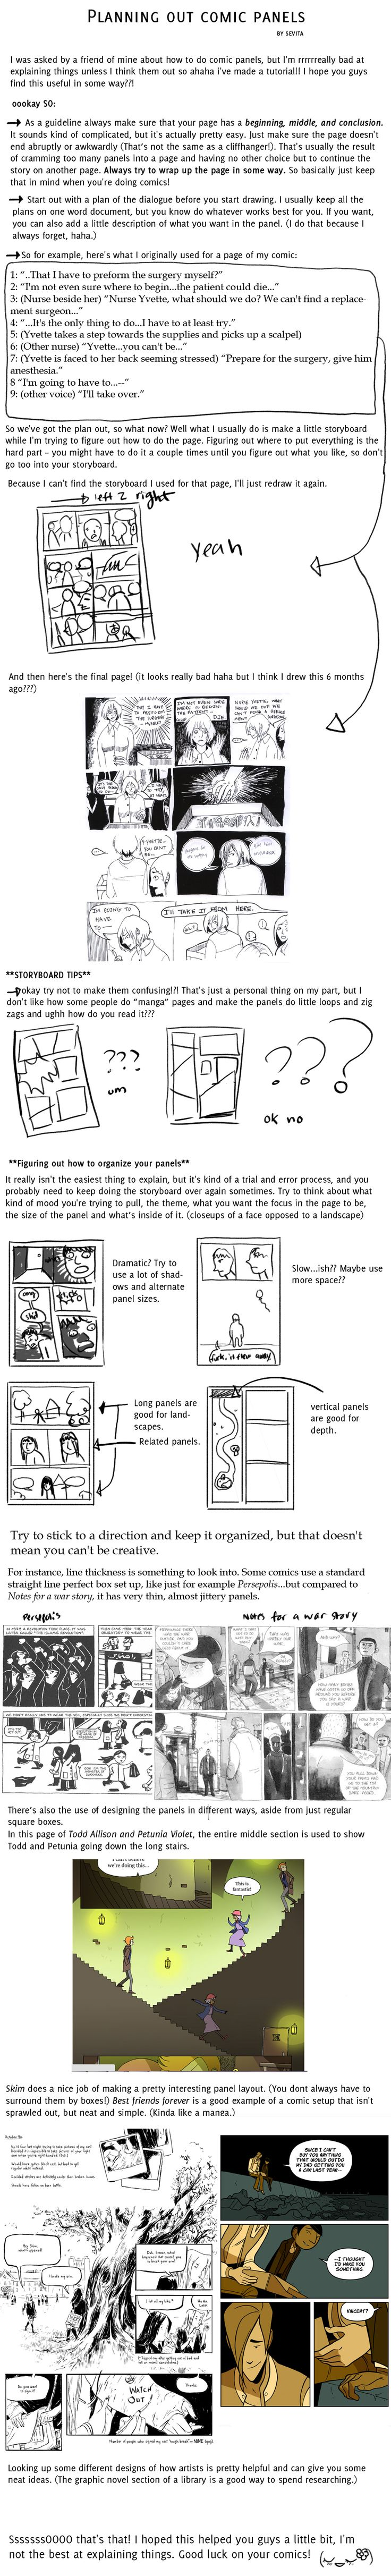 Tutorial: Planning out comic panels by zombieandrobot.deviantart.com on @DeviantArt